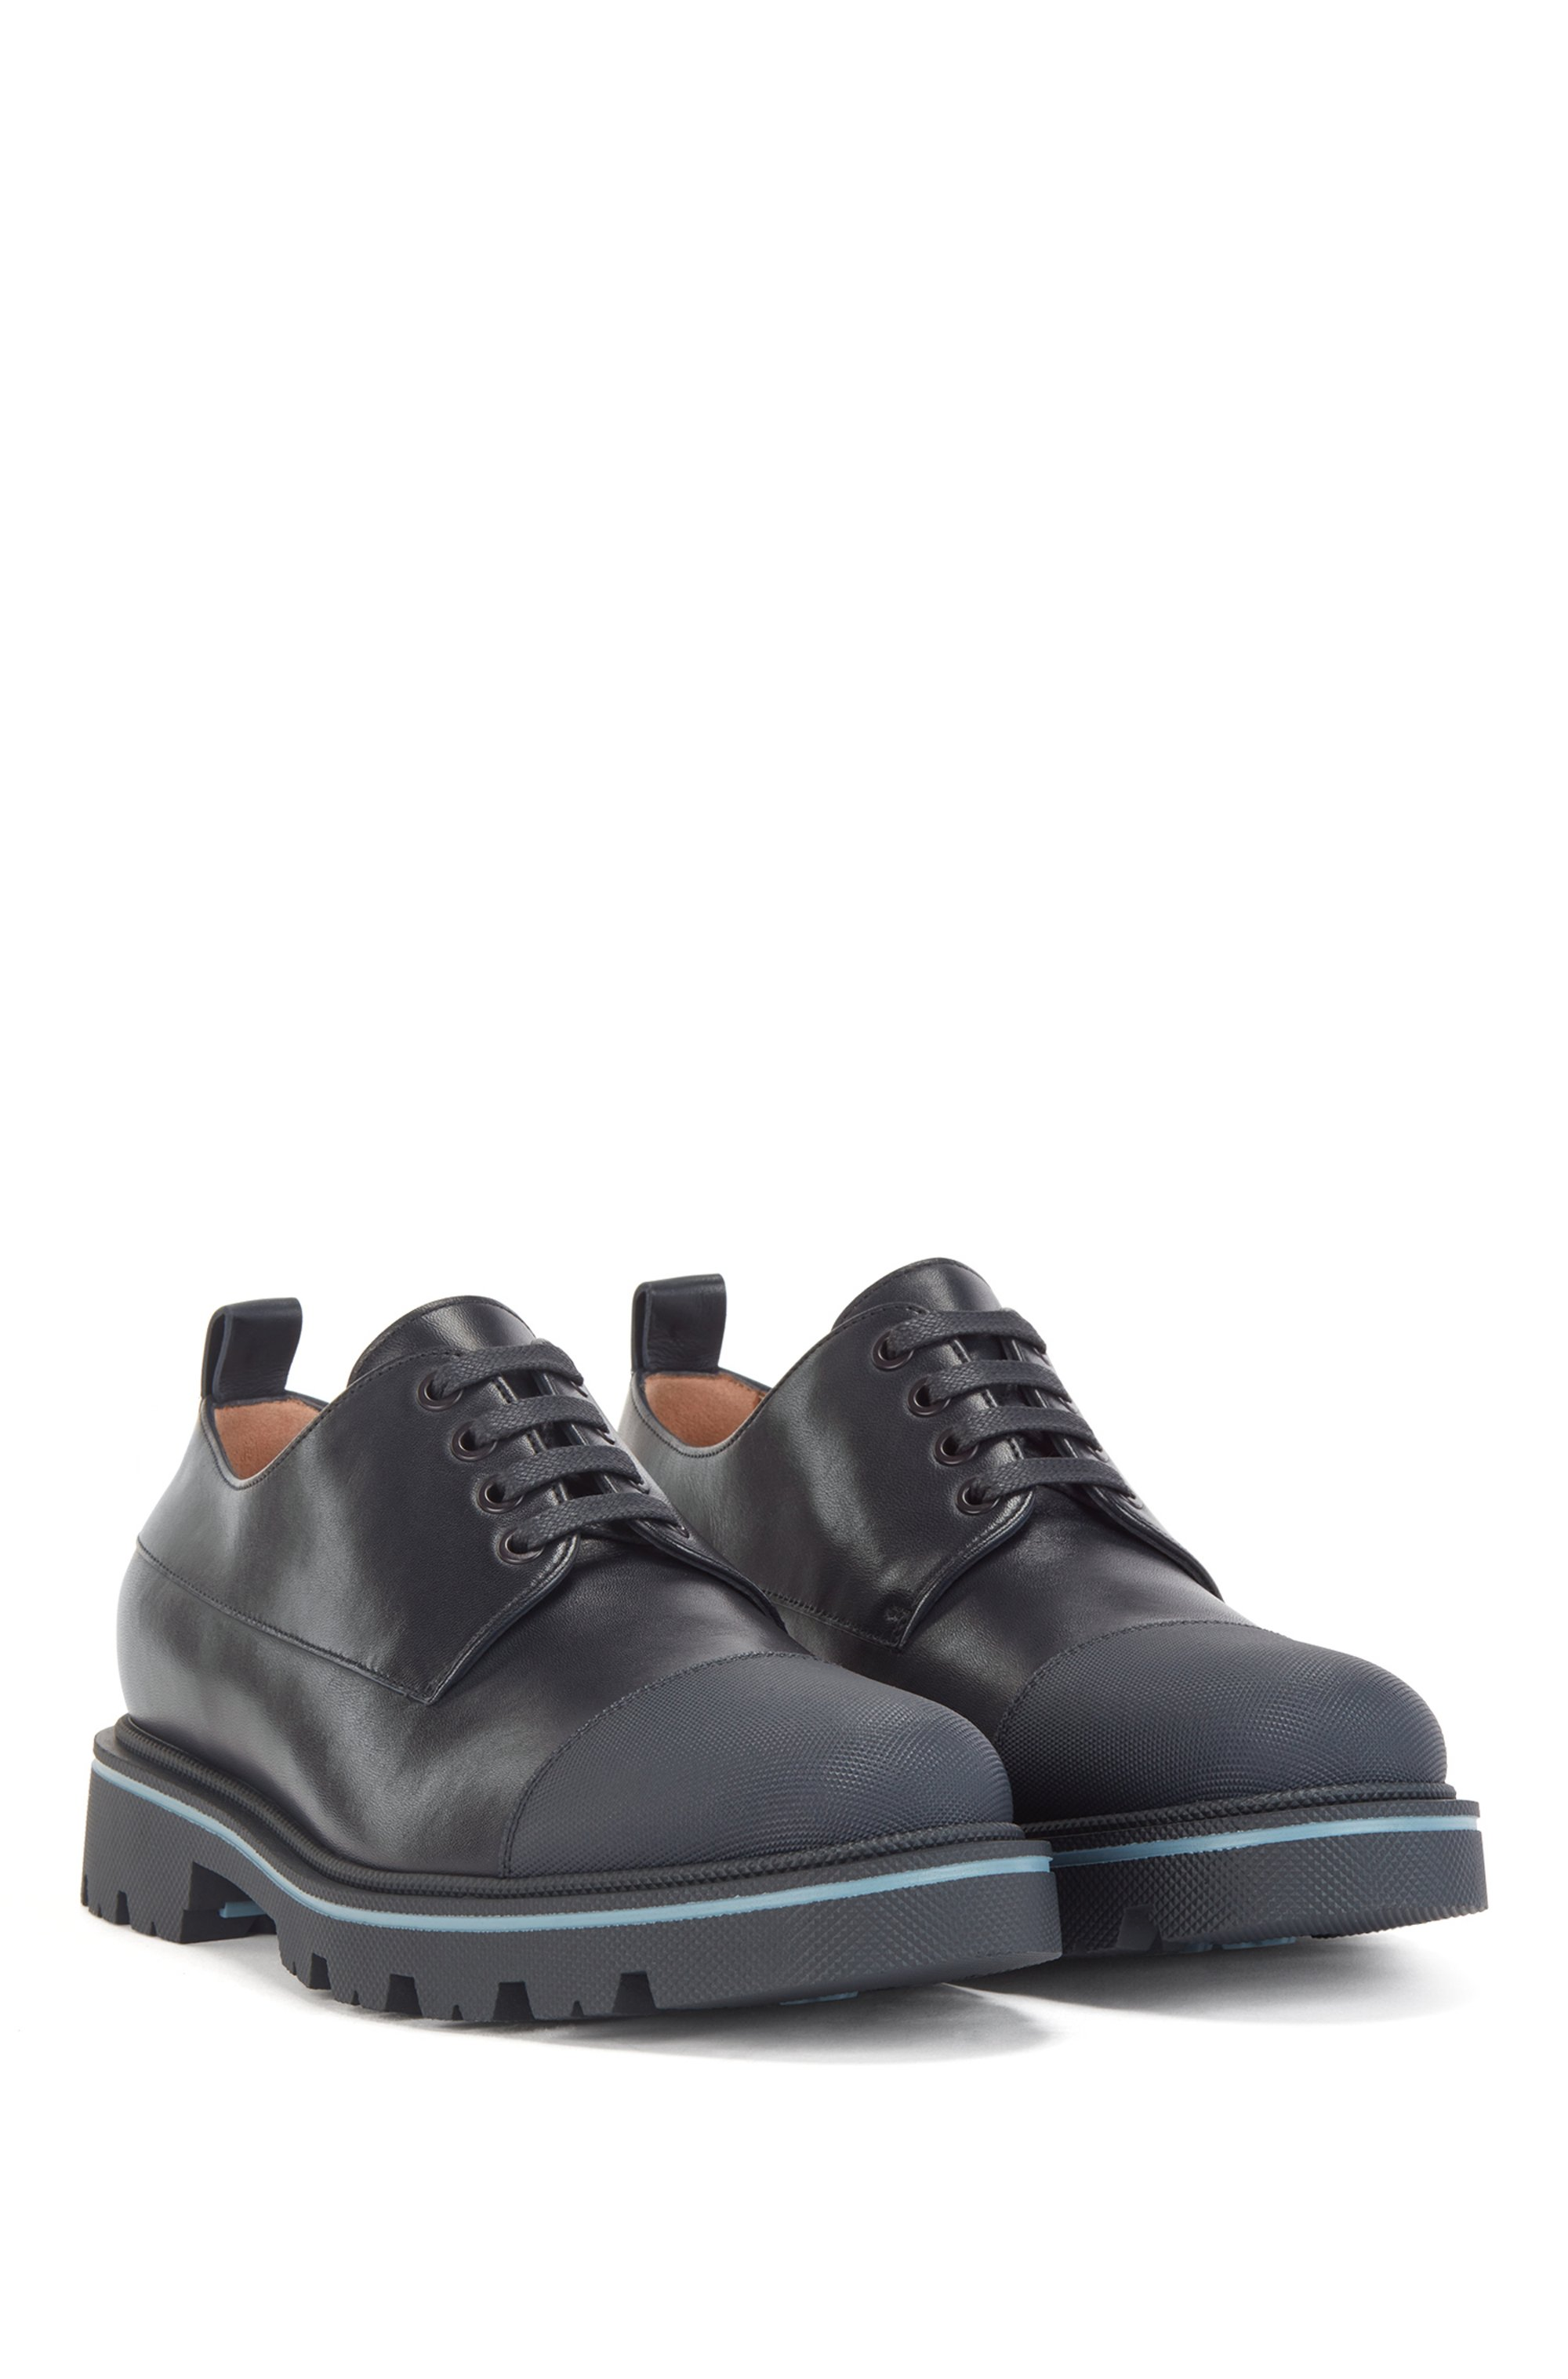 Derby shoes in polished leather with toe-cap trim